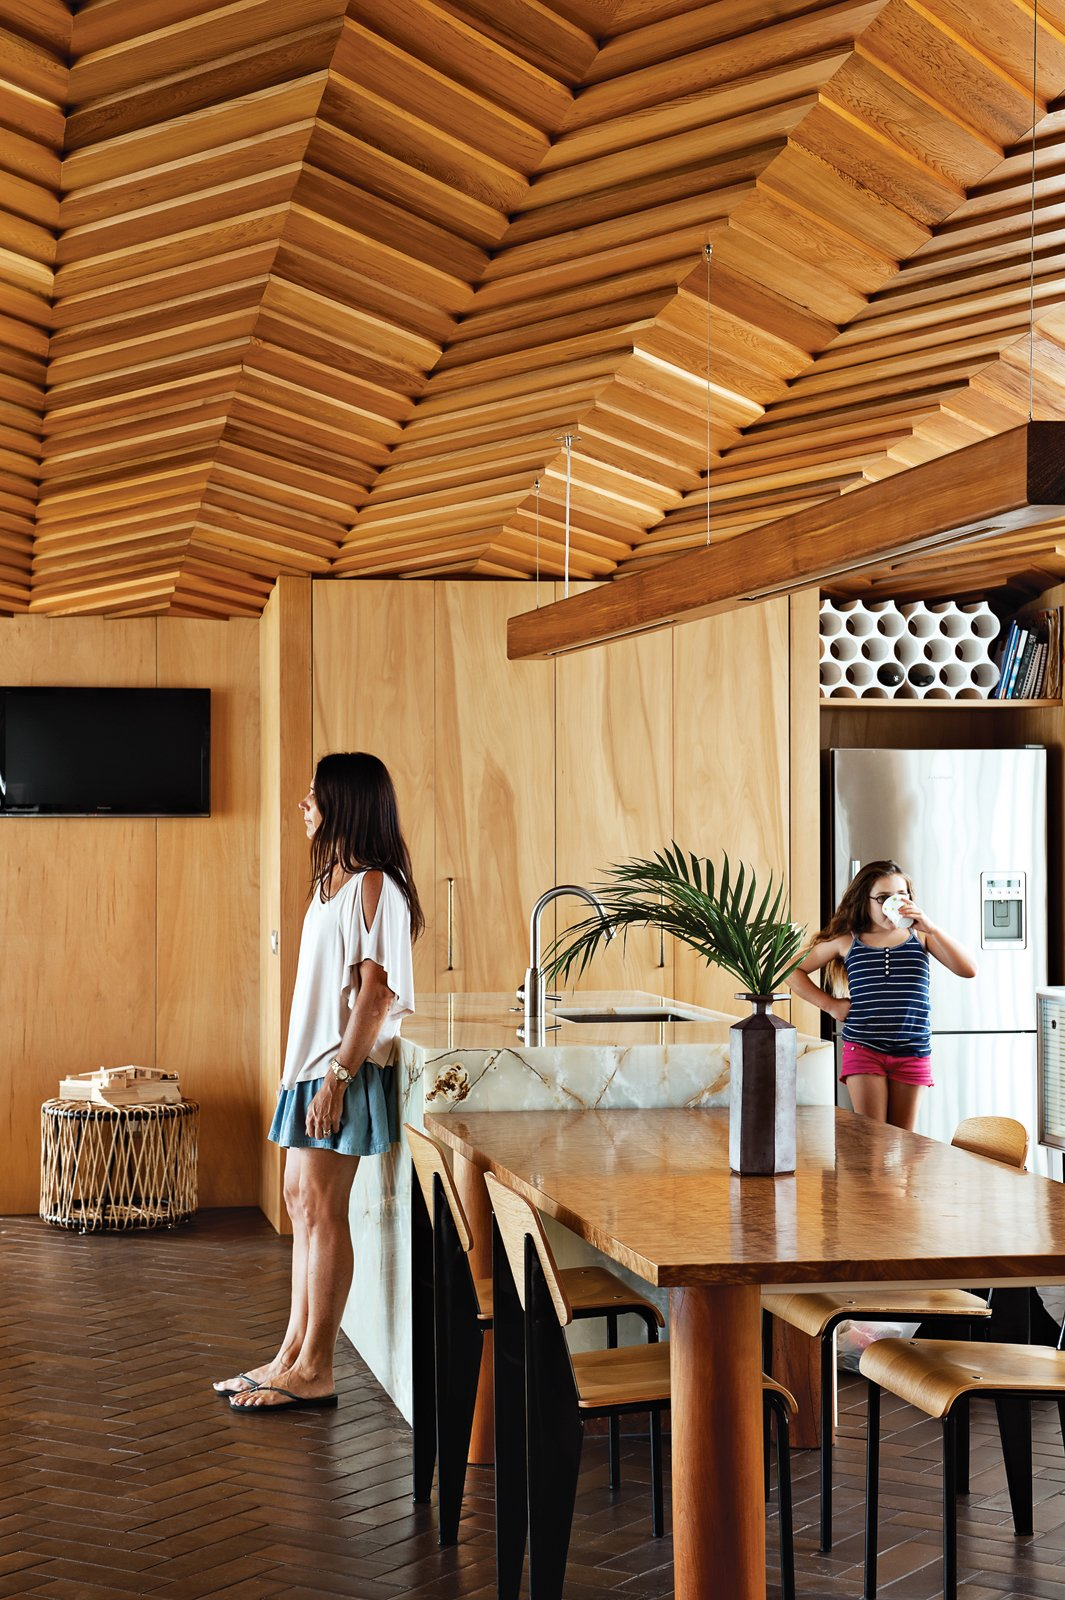 """O'Sullivan designed the ceiling """"to have a knitted or woven quality like that of wool or silk."""" It dives down over the kitchen and dining area, eventually reaching a point at the entry that is low enough to touch. Here, resident Jes Wood leans against the onyx kitchen island while her daughter Ruby hangs out. Replica Jean Prouvé chairs surround the dining table; a vase by Bruce and Estelle Martin for Kamaka Pottery sits on top. The Reel table under the television is by Atelier Oï for B&B Italia.  Photo 2 of 4 in Tips for Buying Wood Furniture"""